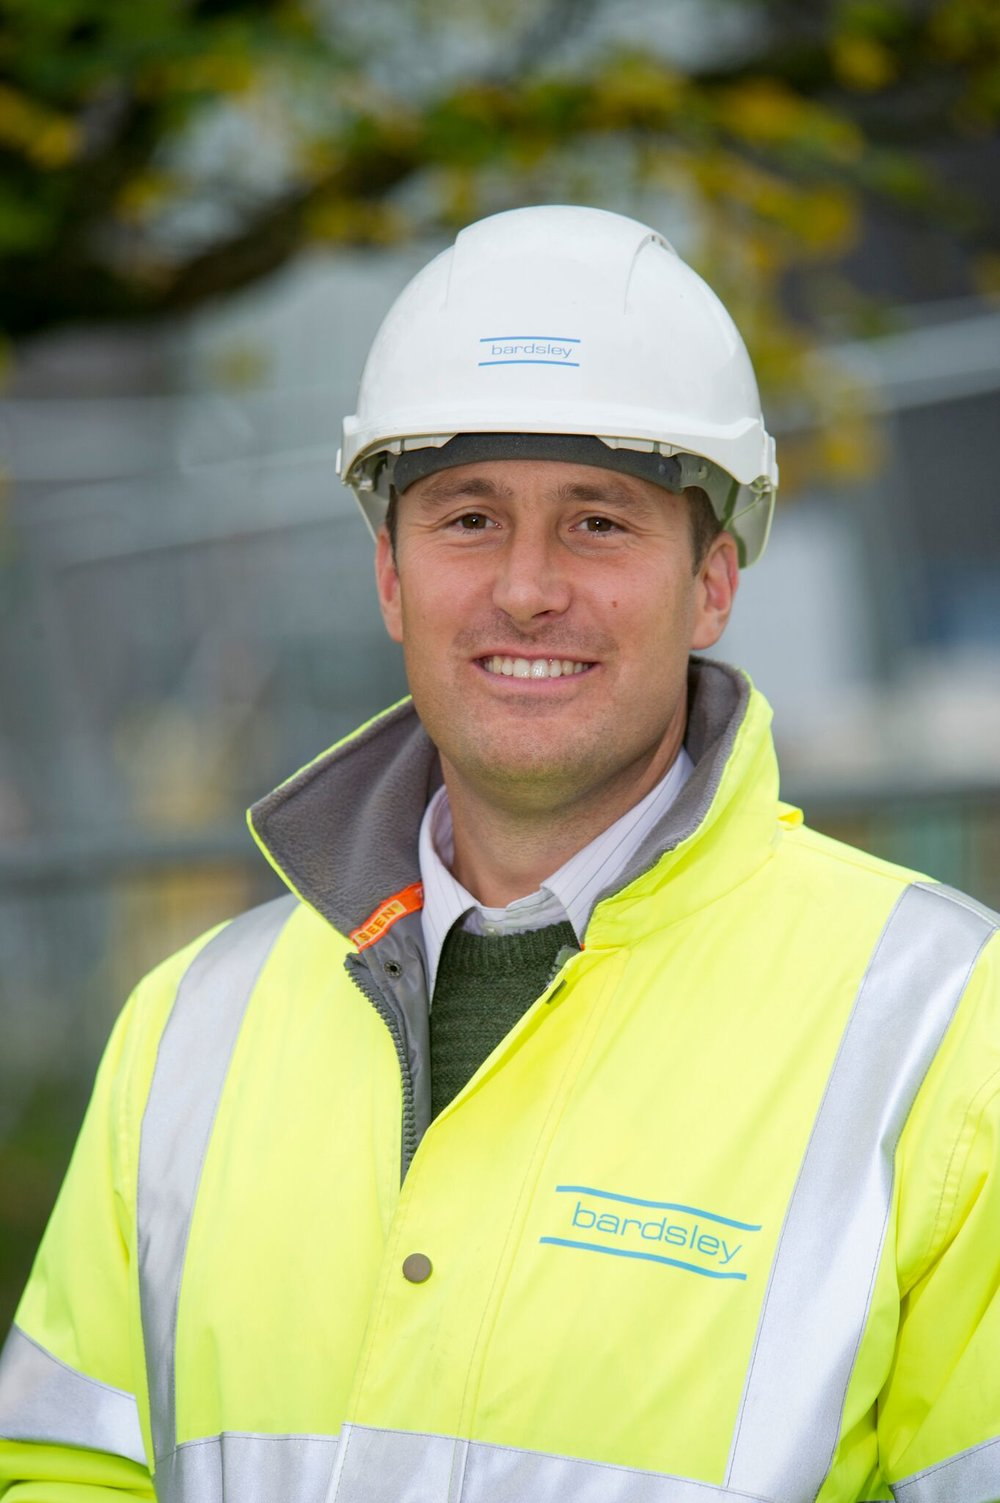 Paul Buckley Site Engineer